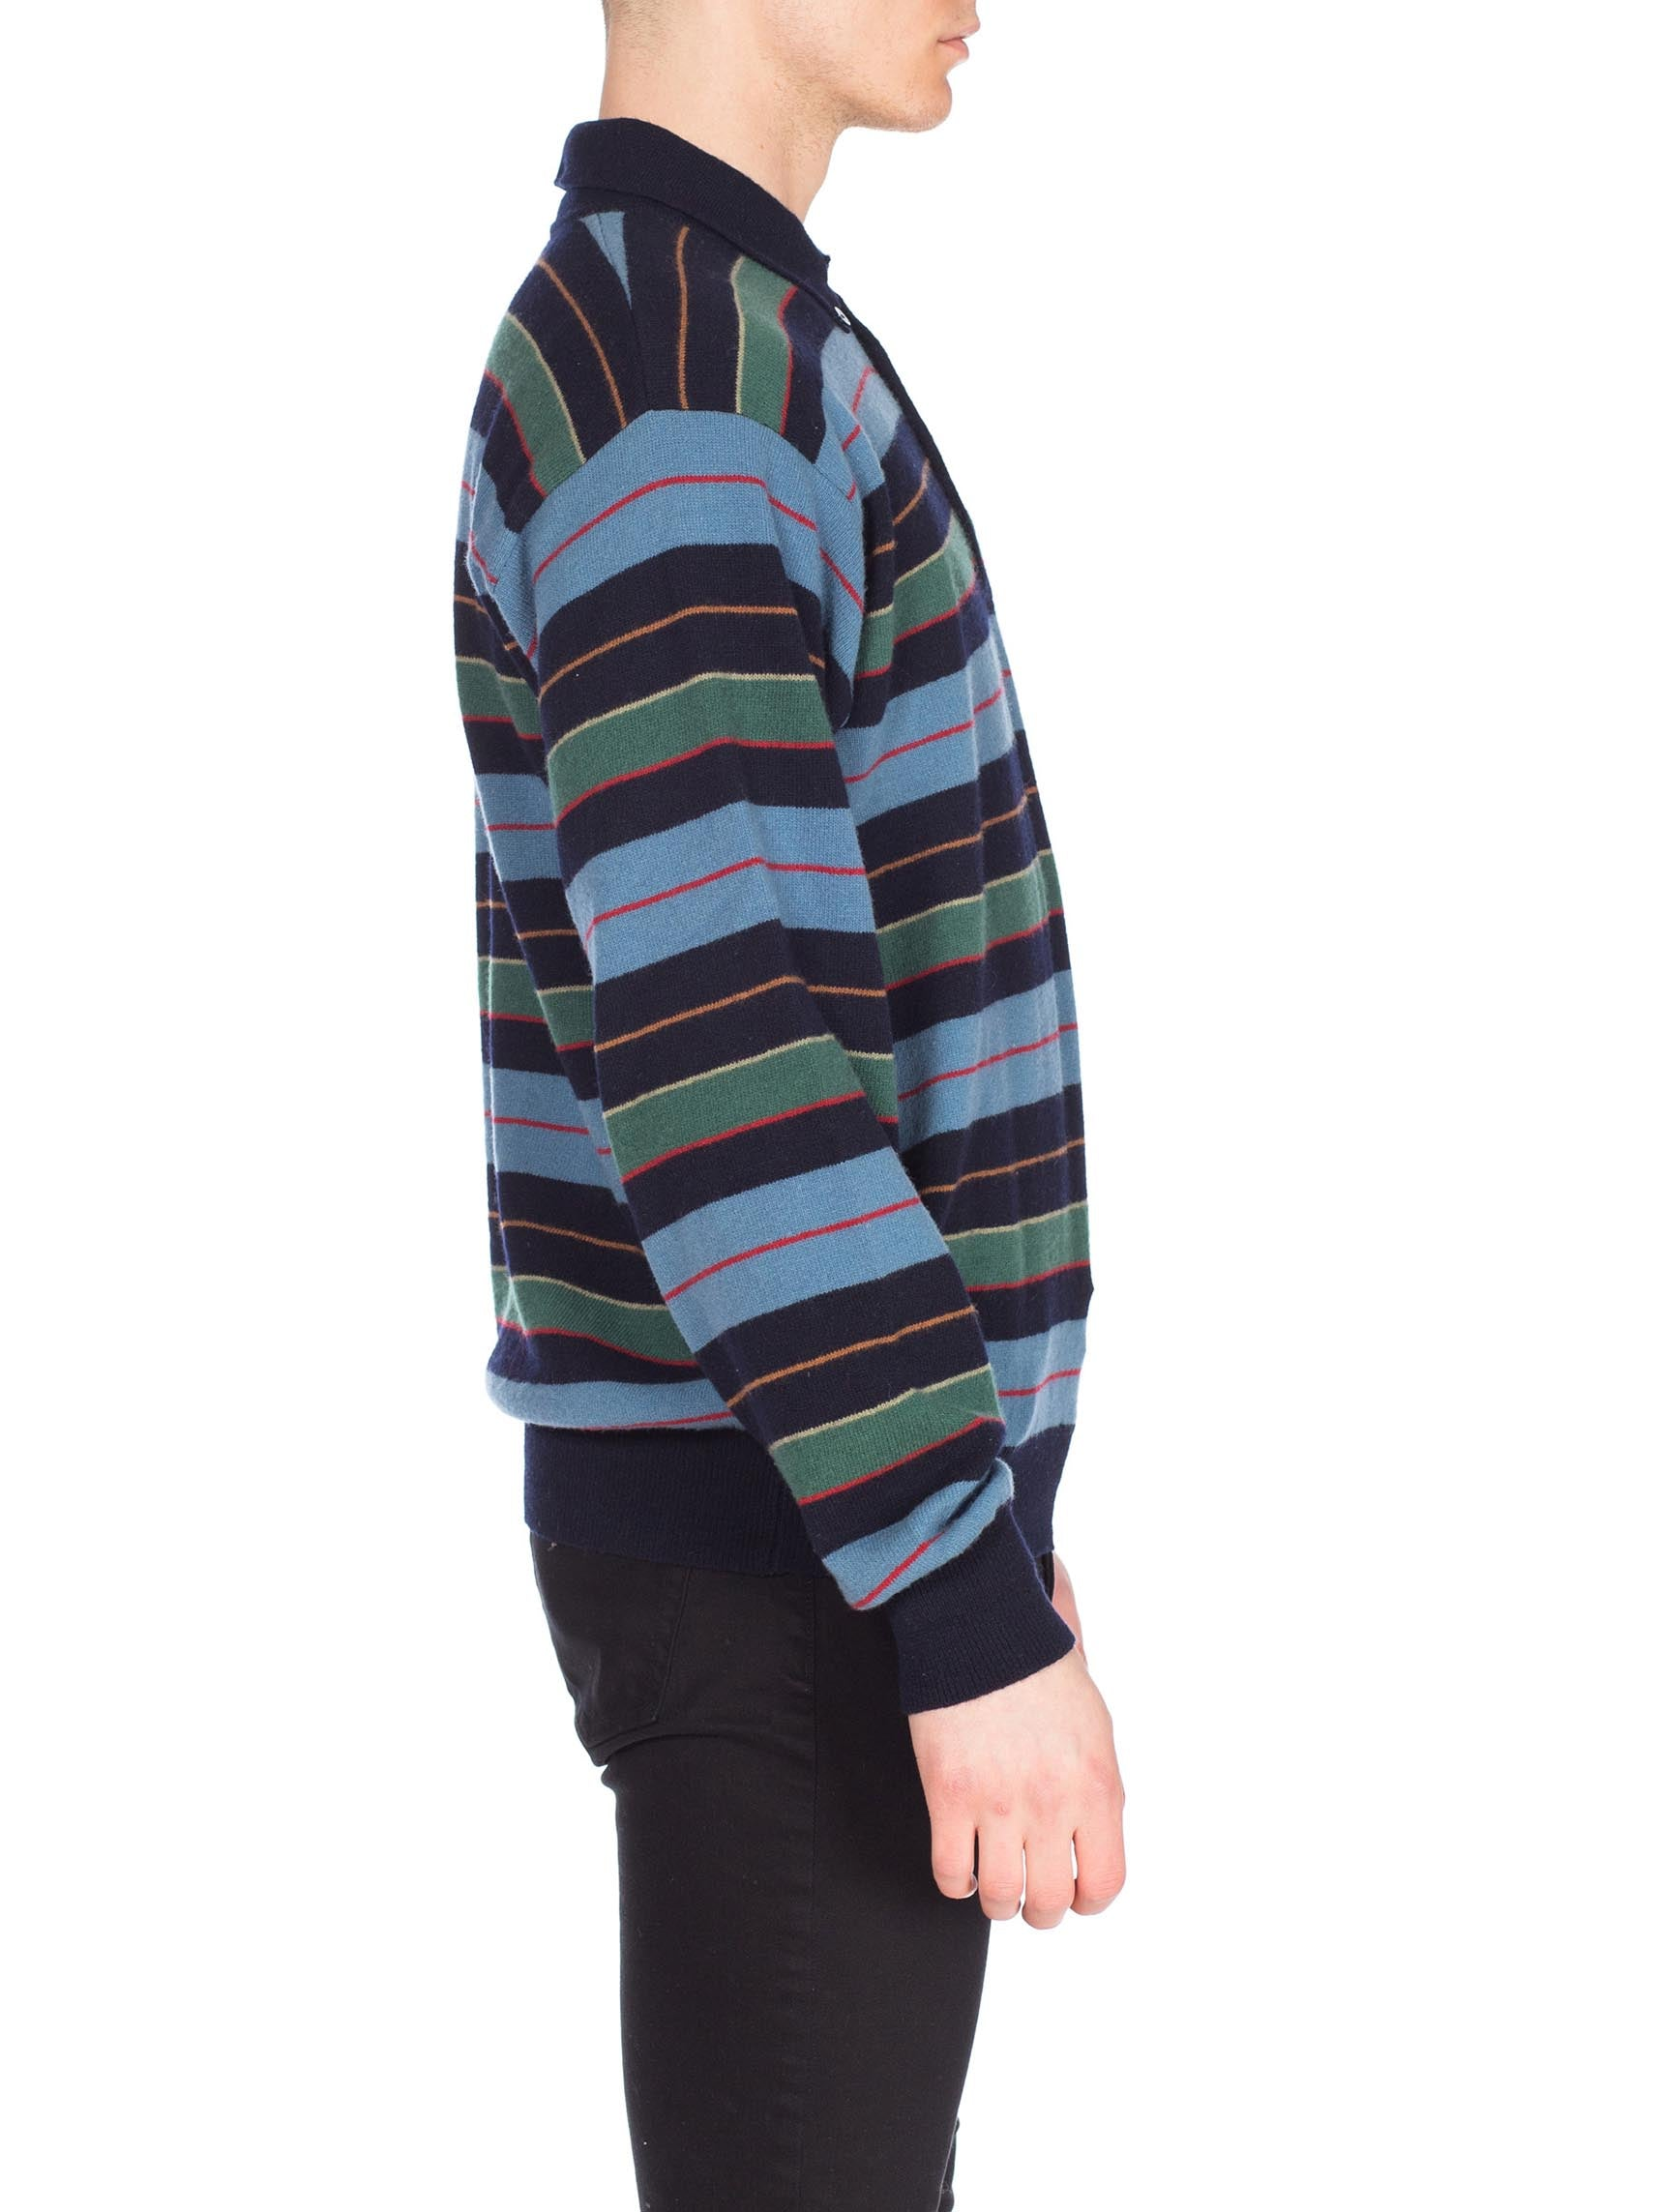 1980S Gucci Blue & Green Striped Wool Knit Polo Neck Sweater With Logo Buttons